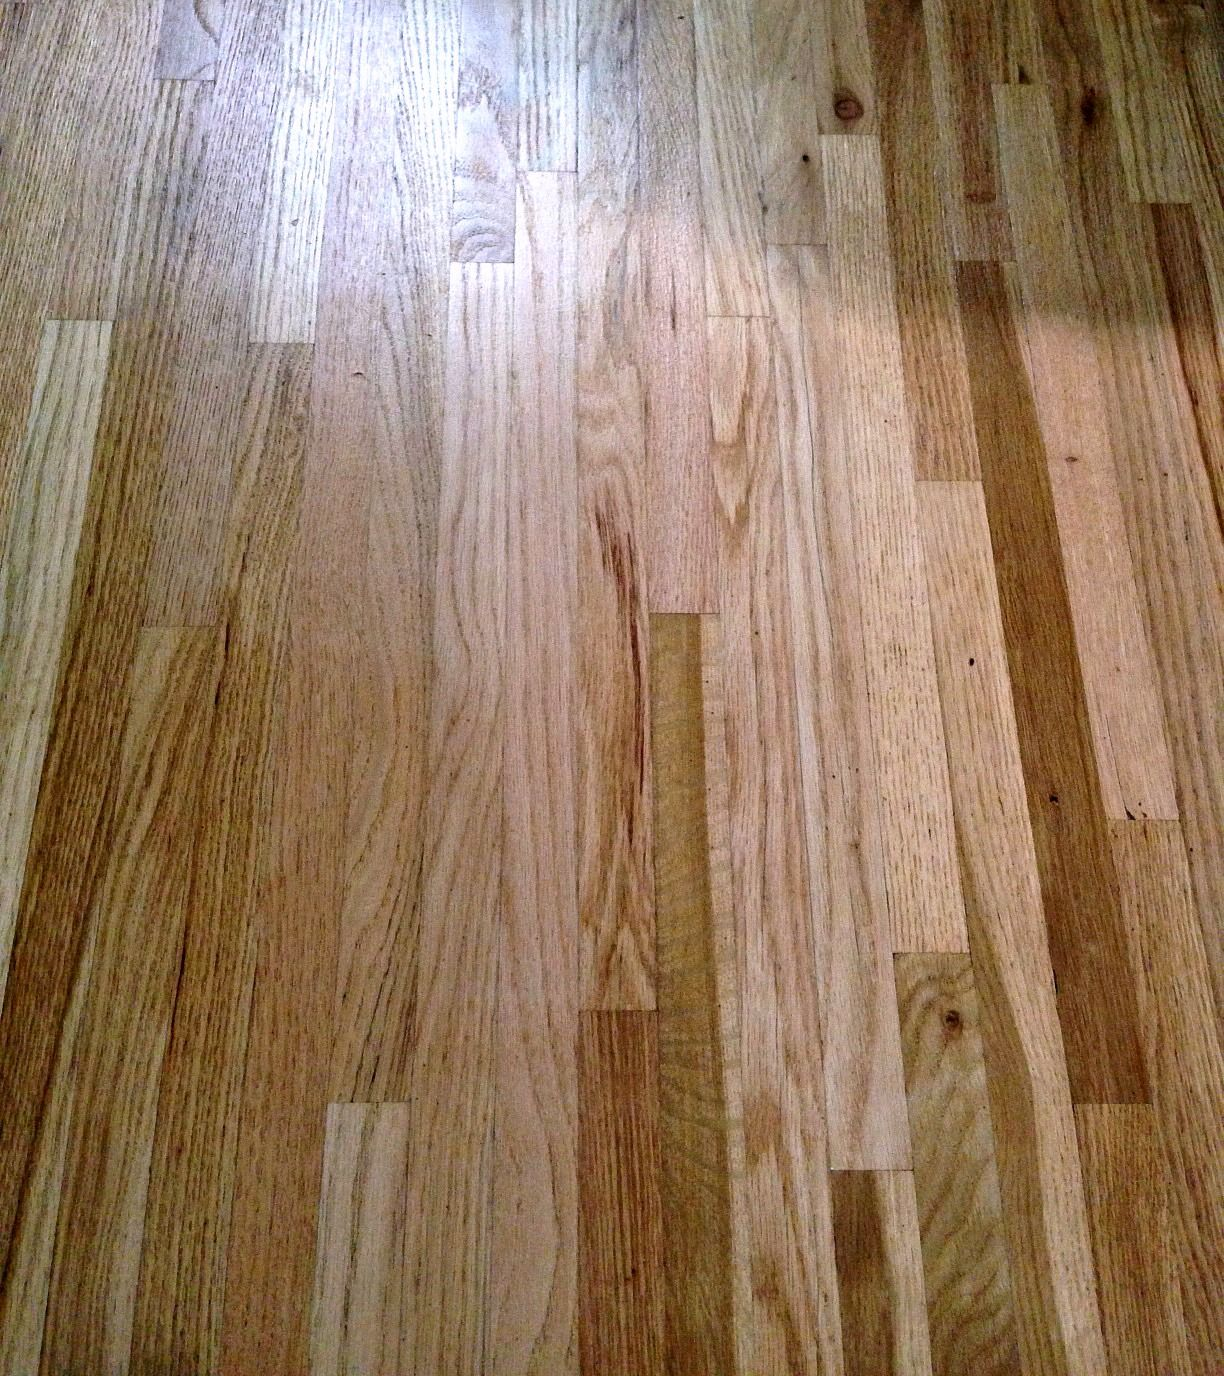 Removing Urine Stains From Hardwood Floors Hardwood Floors Staining Wood Floors Flooring